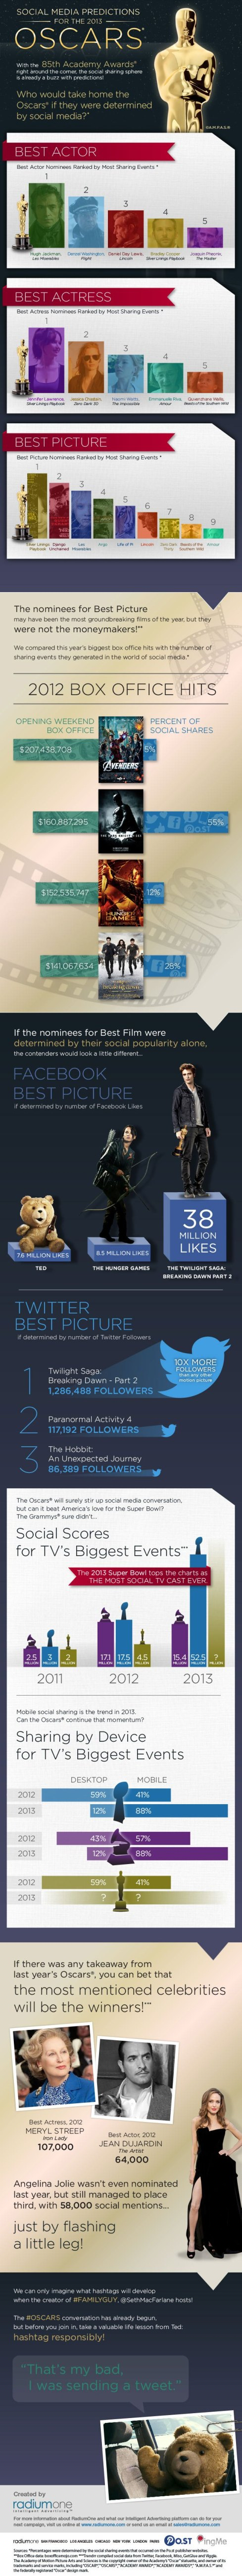 social-media-predictions-for-oscar-infographic-